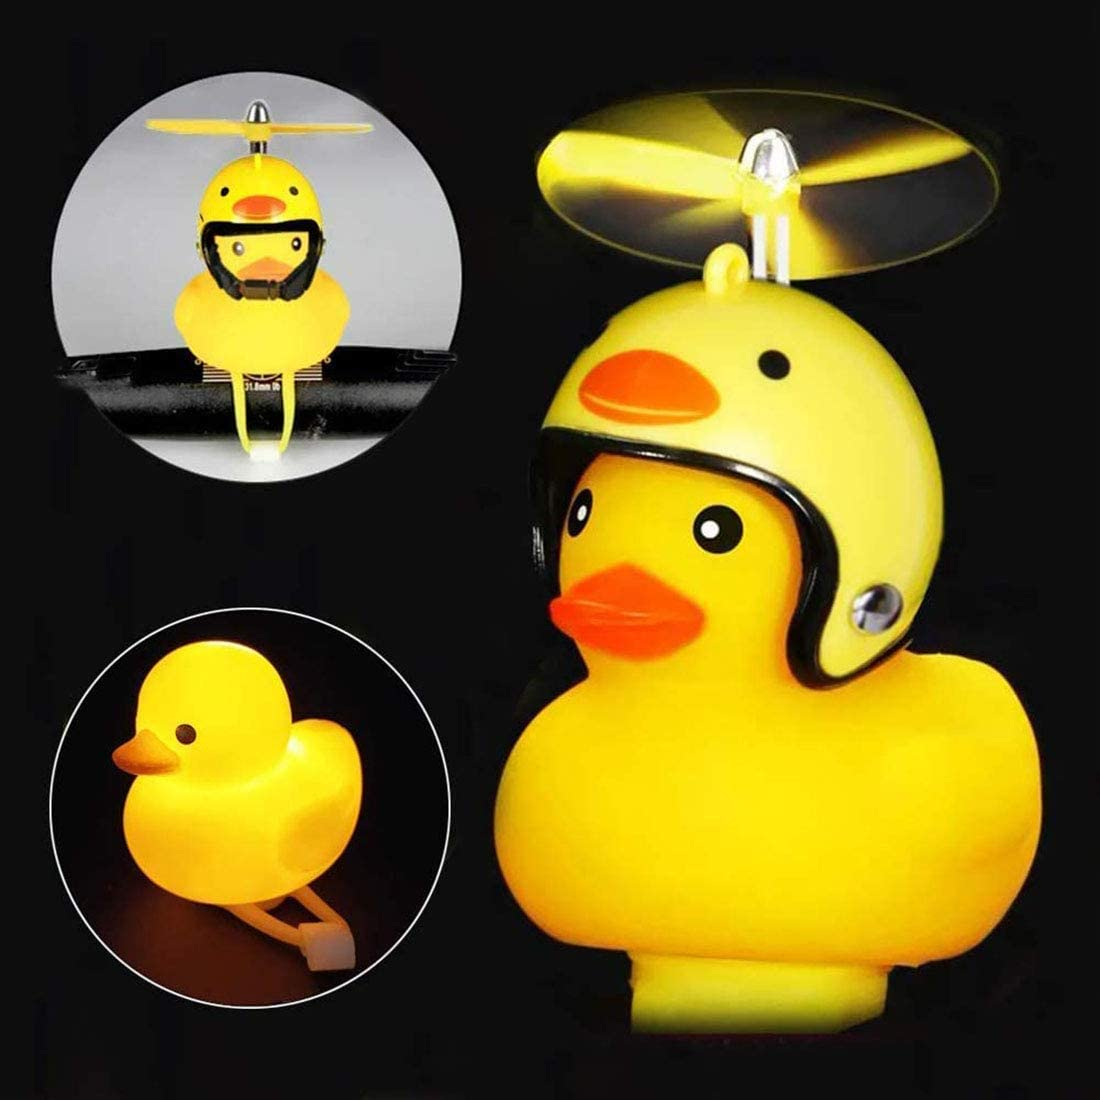 Cycling Light Cute Rubber Duck Toy for Toddler Kids Girls Boys Squeeze Horn Loud Quack Sound Toddler Bike Bells Bicycle Bell for Girls Duck Bicycle Horn with Bike Light Kids Bike Bell